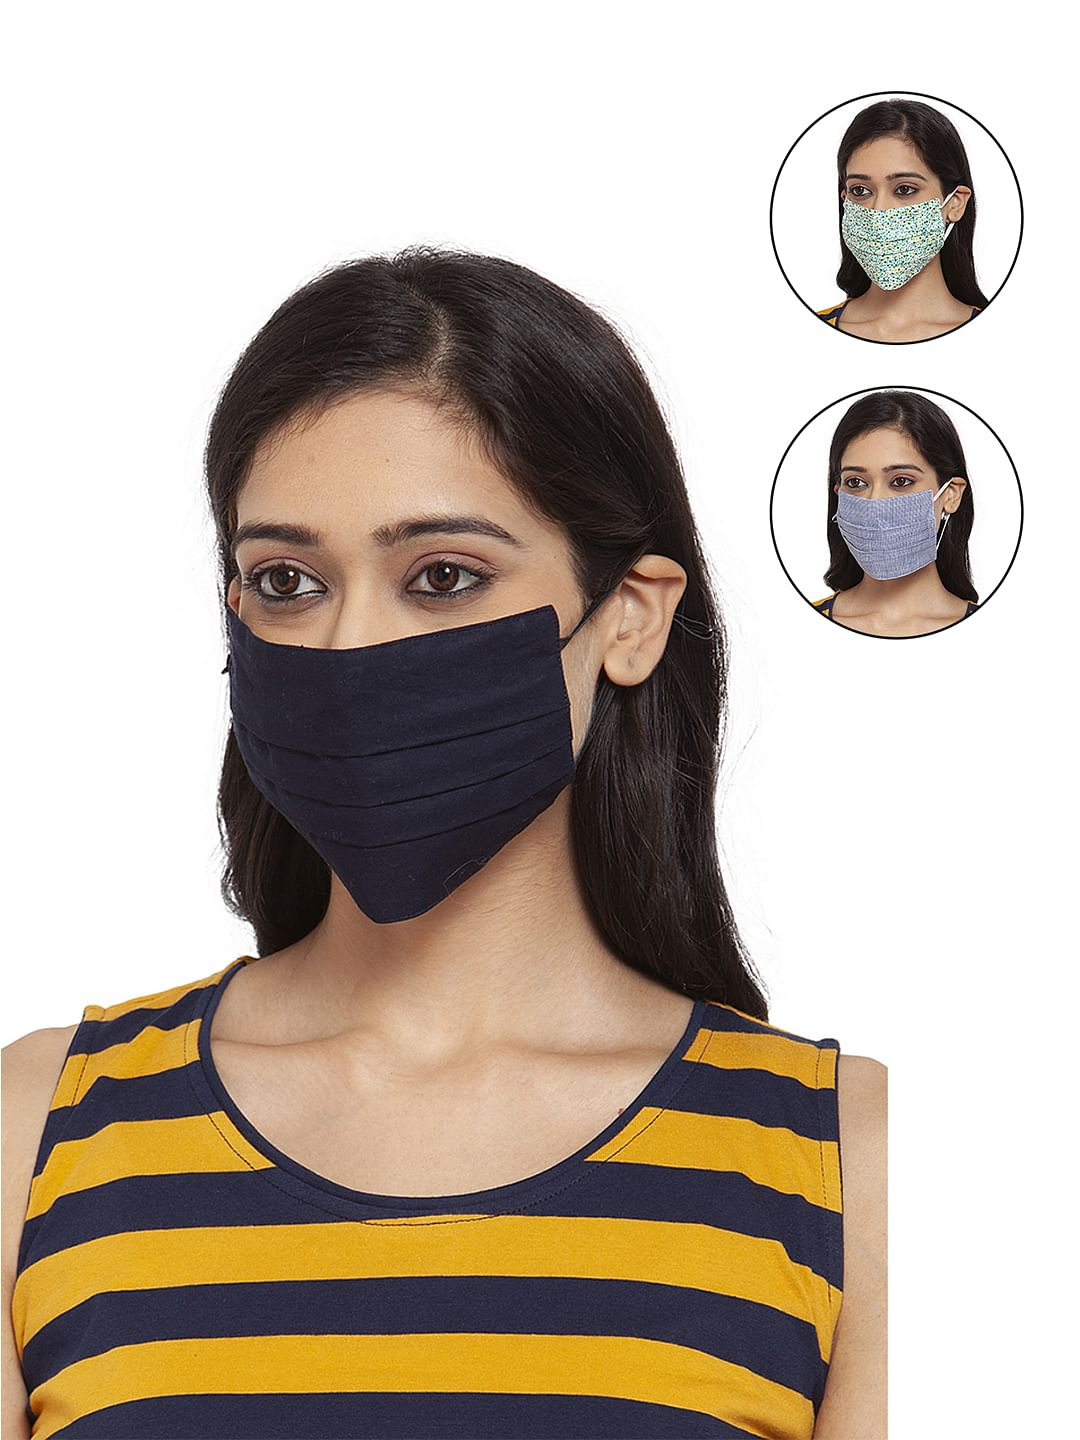 Secret Wish Unisex 3-Layer Adjustable & Stretchable Protective Mask with Ear Loops - Size L - Set of 3